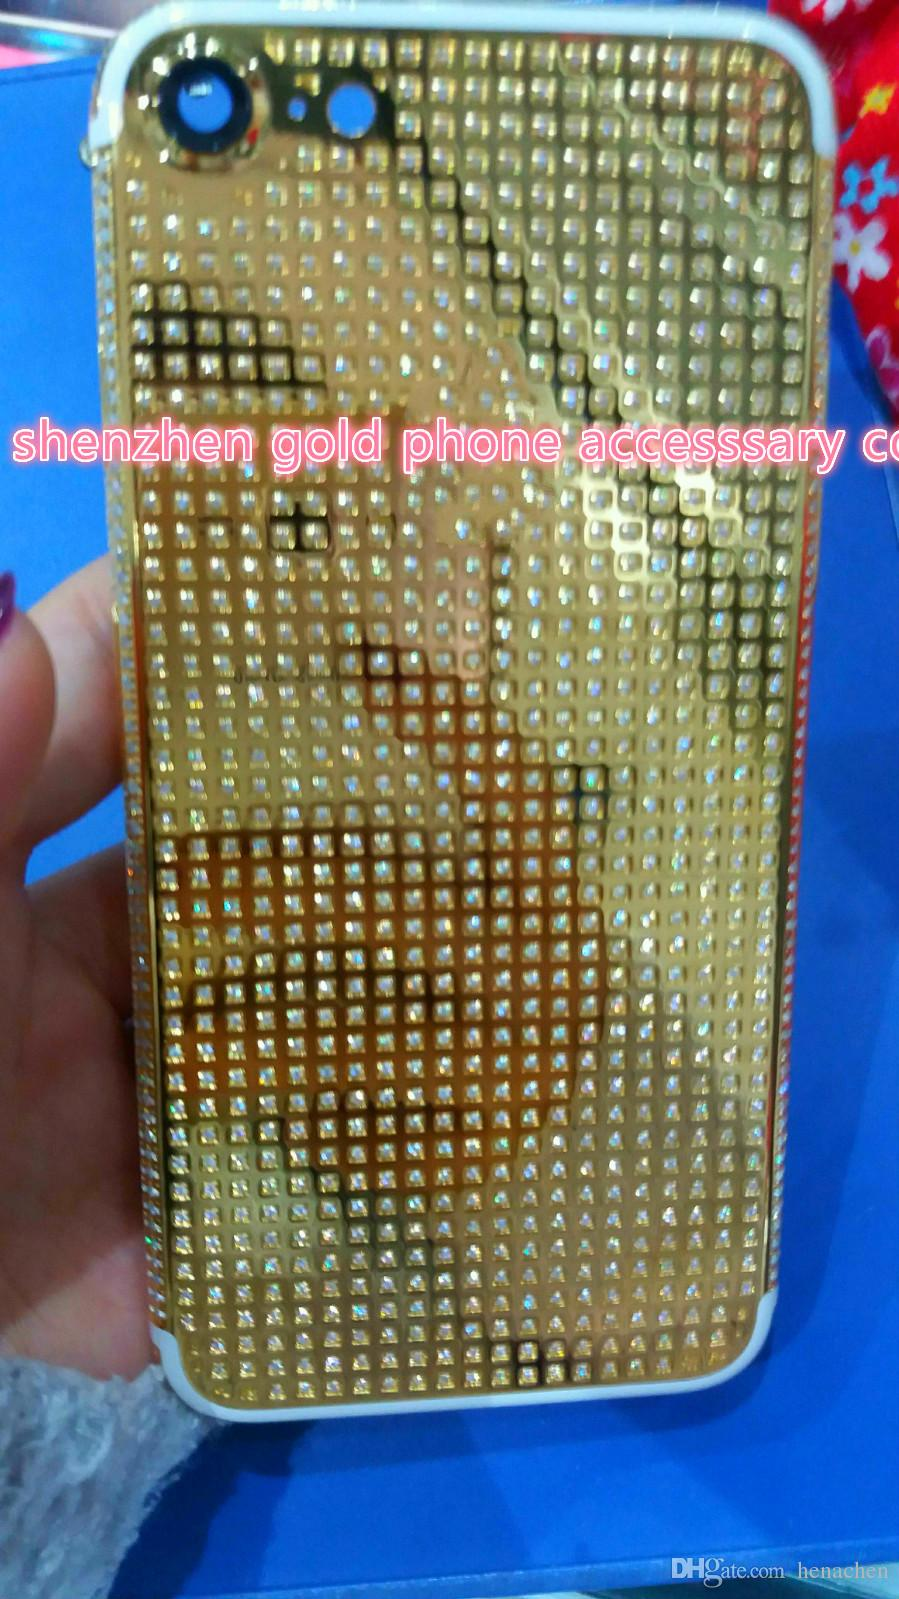 For iphone 7 7 Plus gold housing full diamond,New 24K 24CT 24KT Mirror GOLD Full Diamond Crystals Back Cover Housing Middle Frame